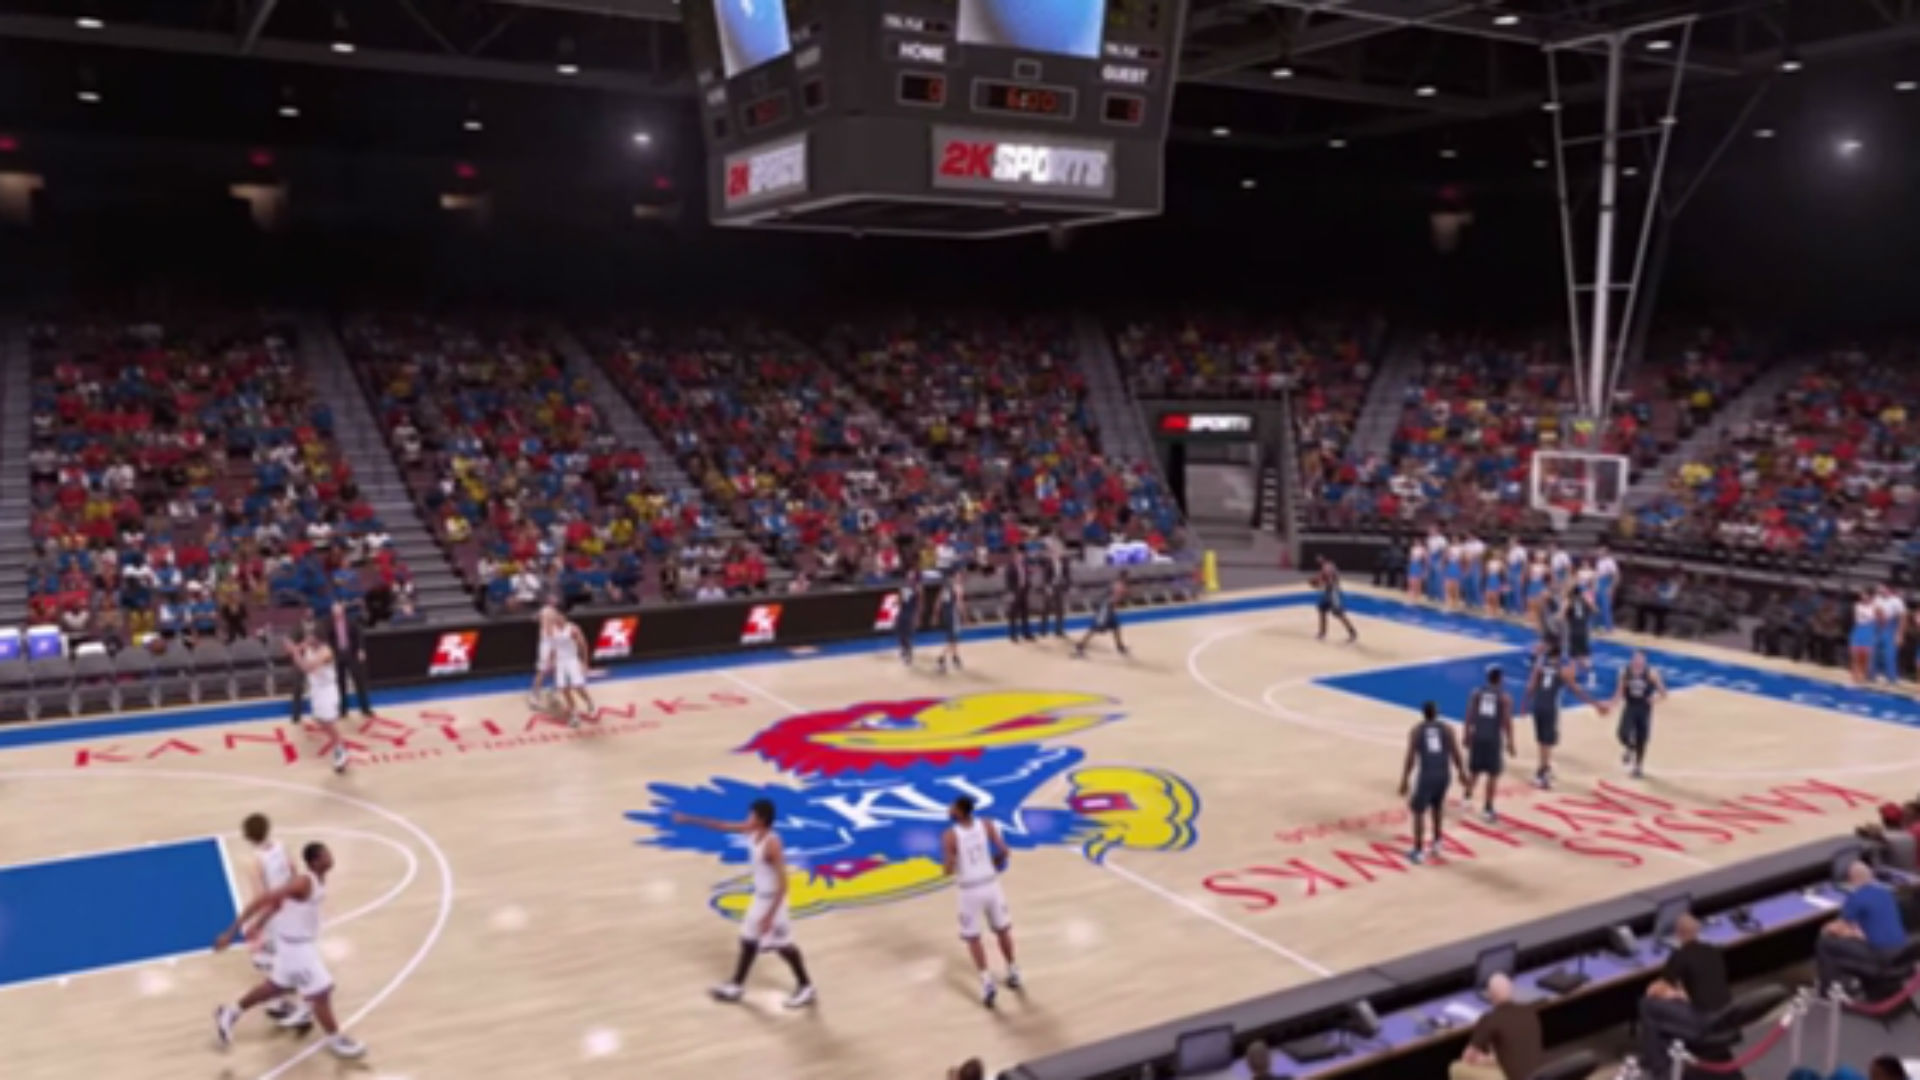 nba-2k16-kansas-jayhawks-091815-2K Sports-FTR.jpg